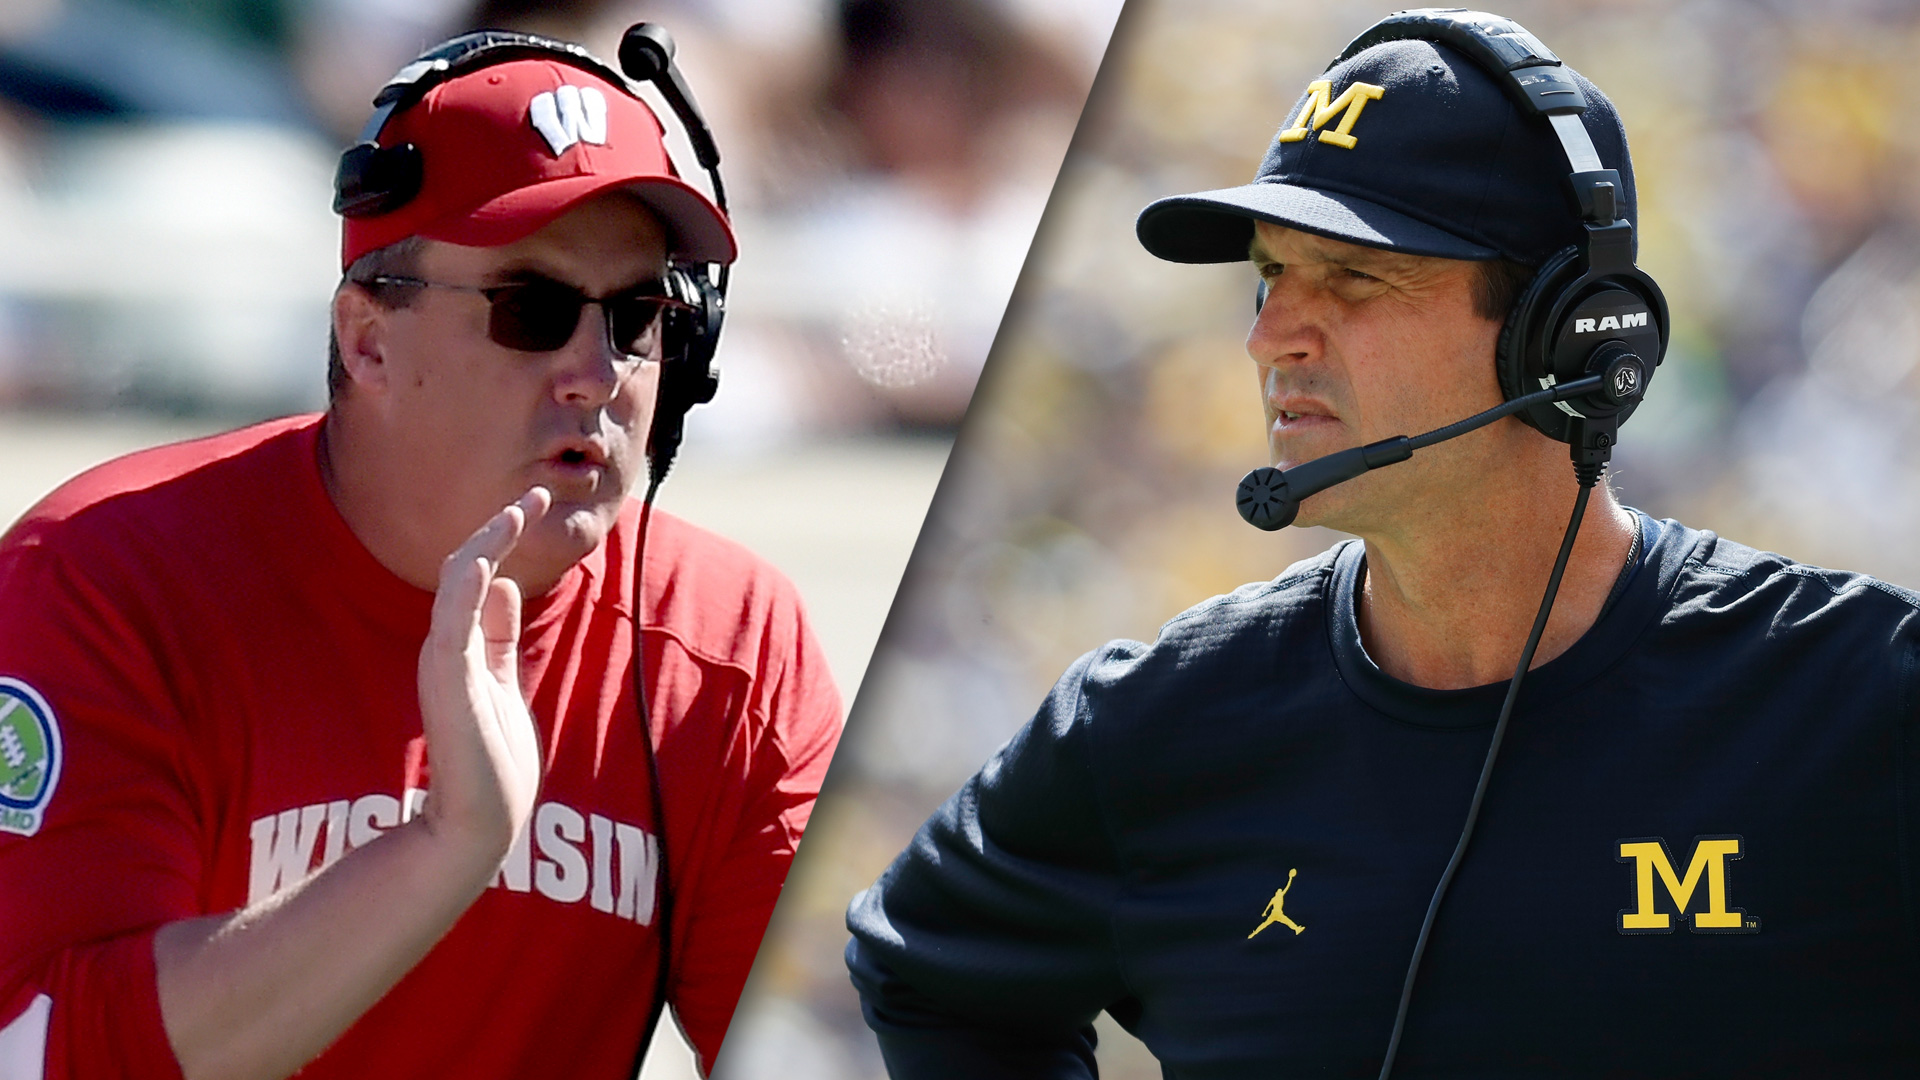 Split-paul-chryst-jim-harbaugh-092616-getty-ftrjpg_4t749m26510k1owvir33zaoo5